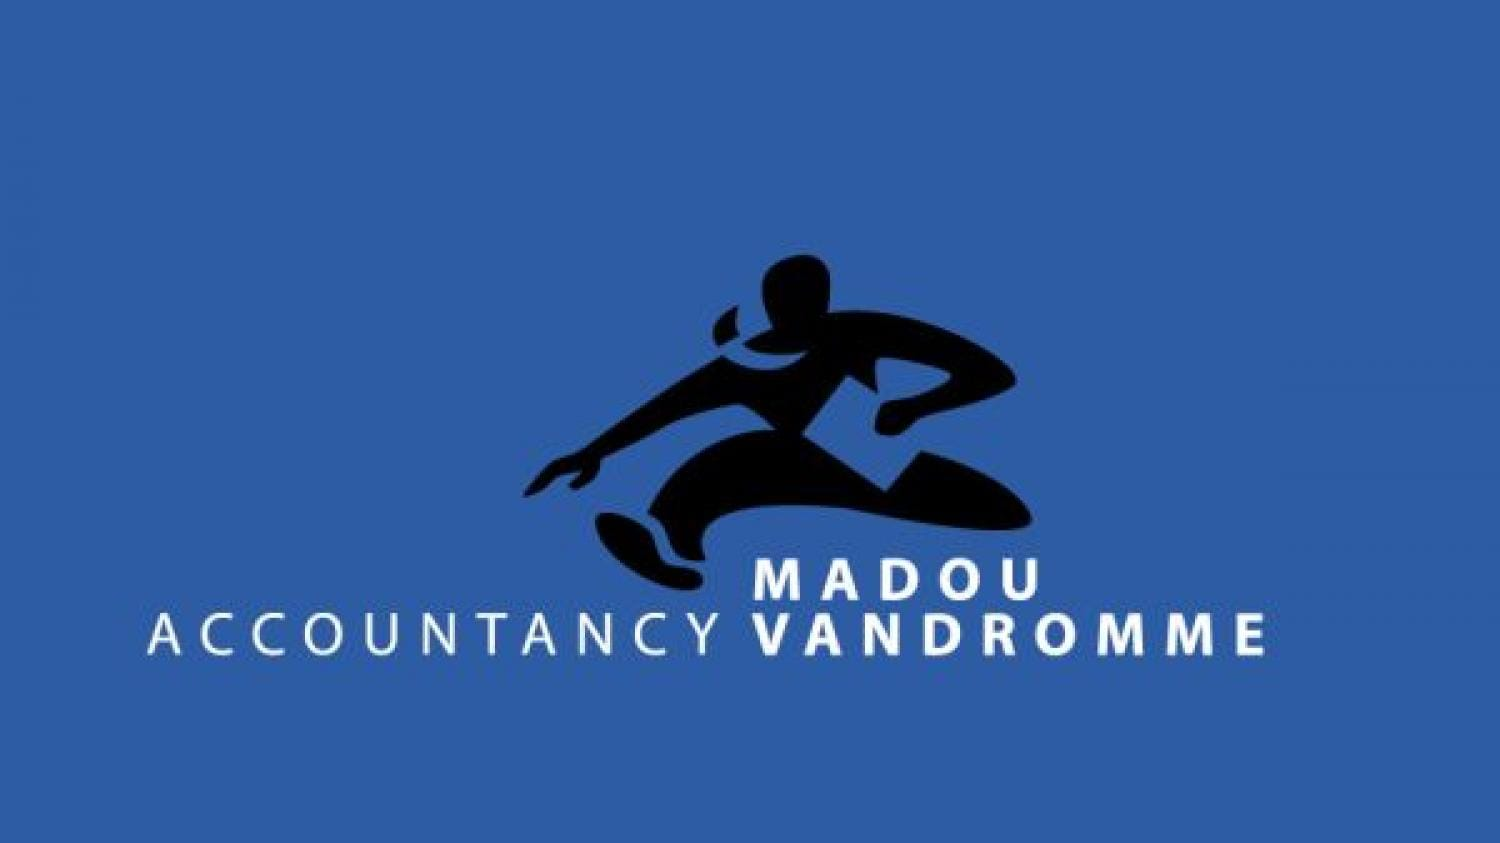 Madouvandromme boekhouder accountancy